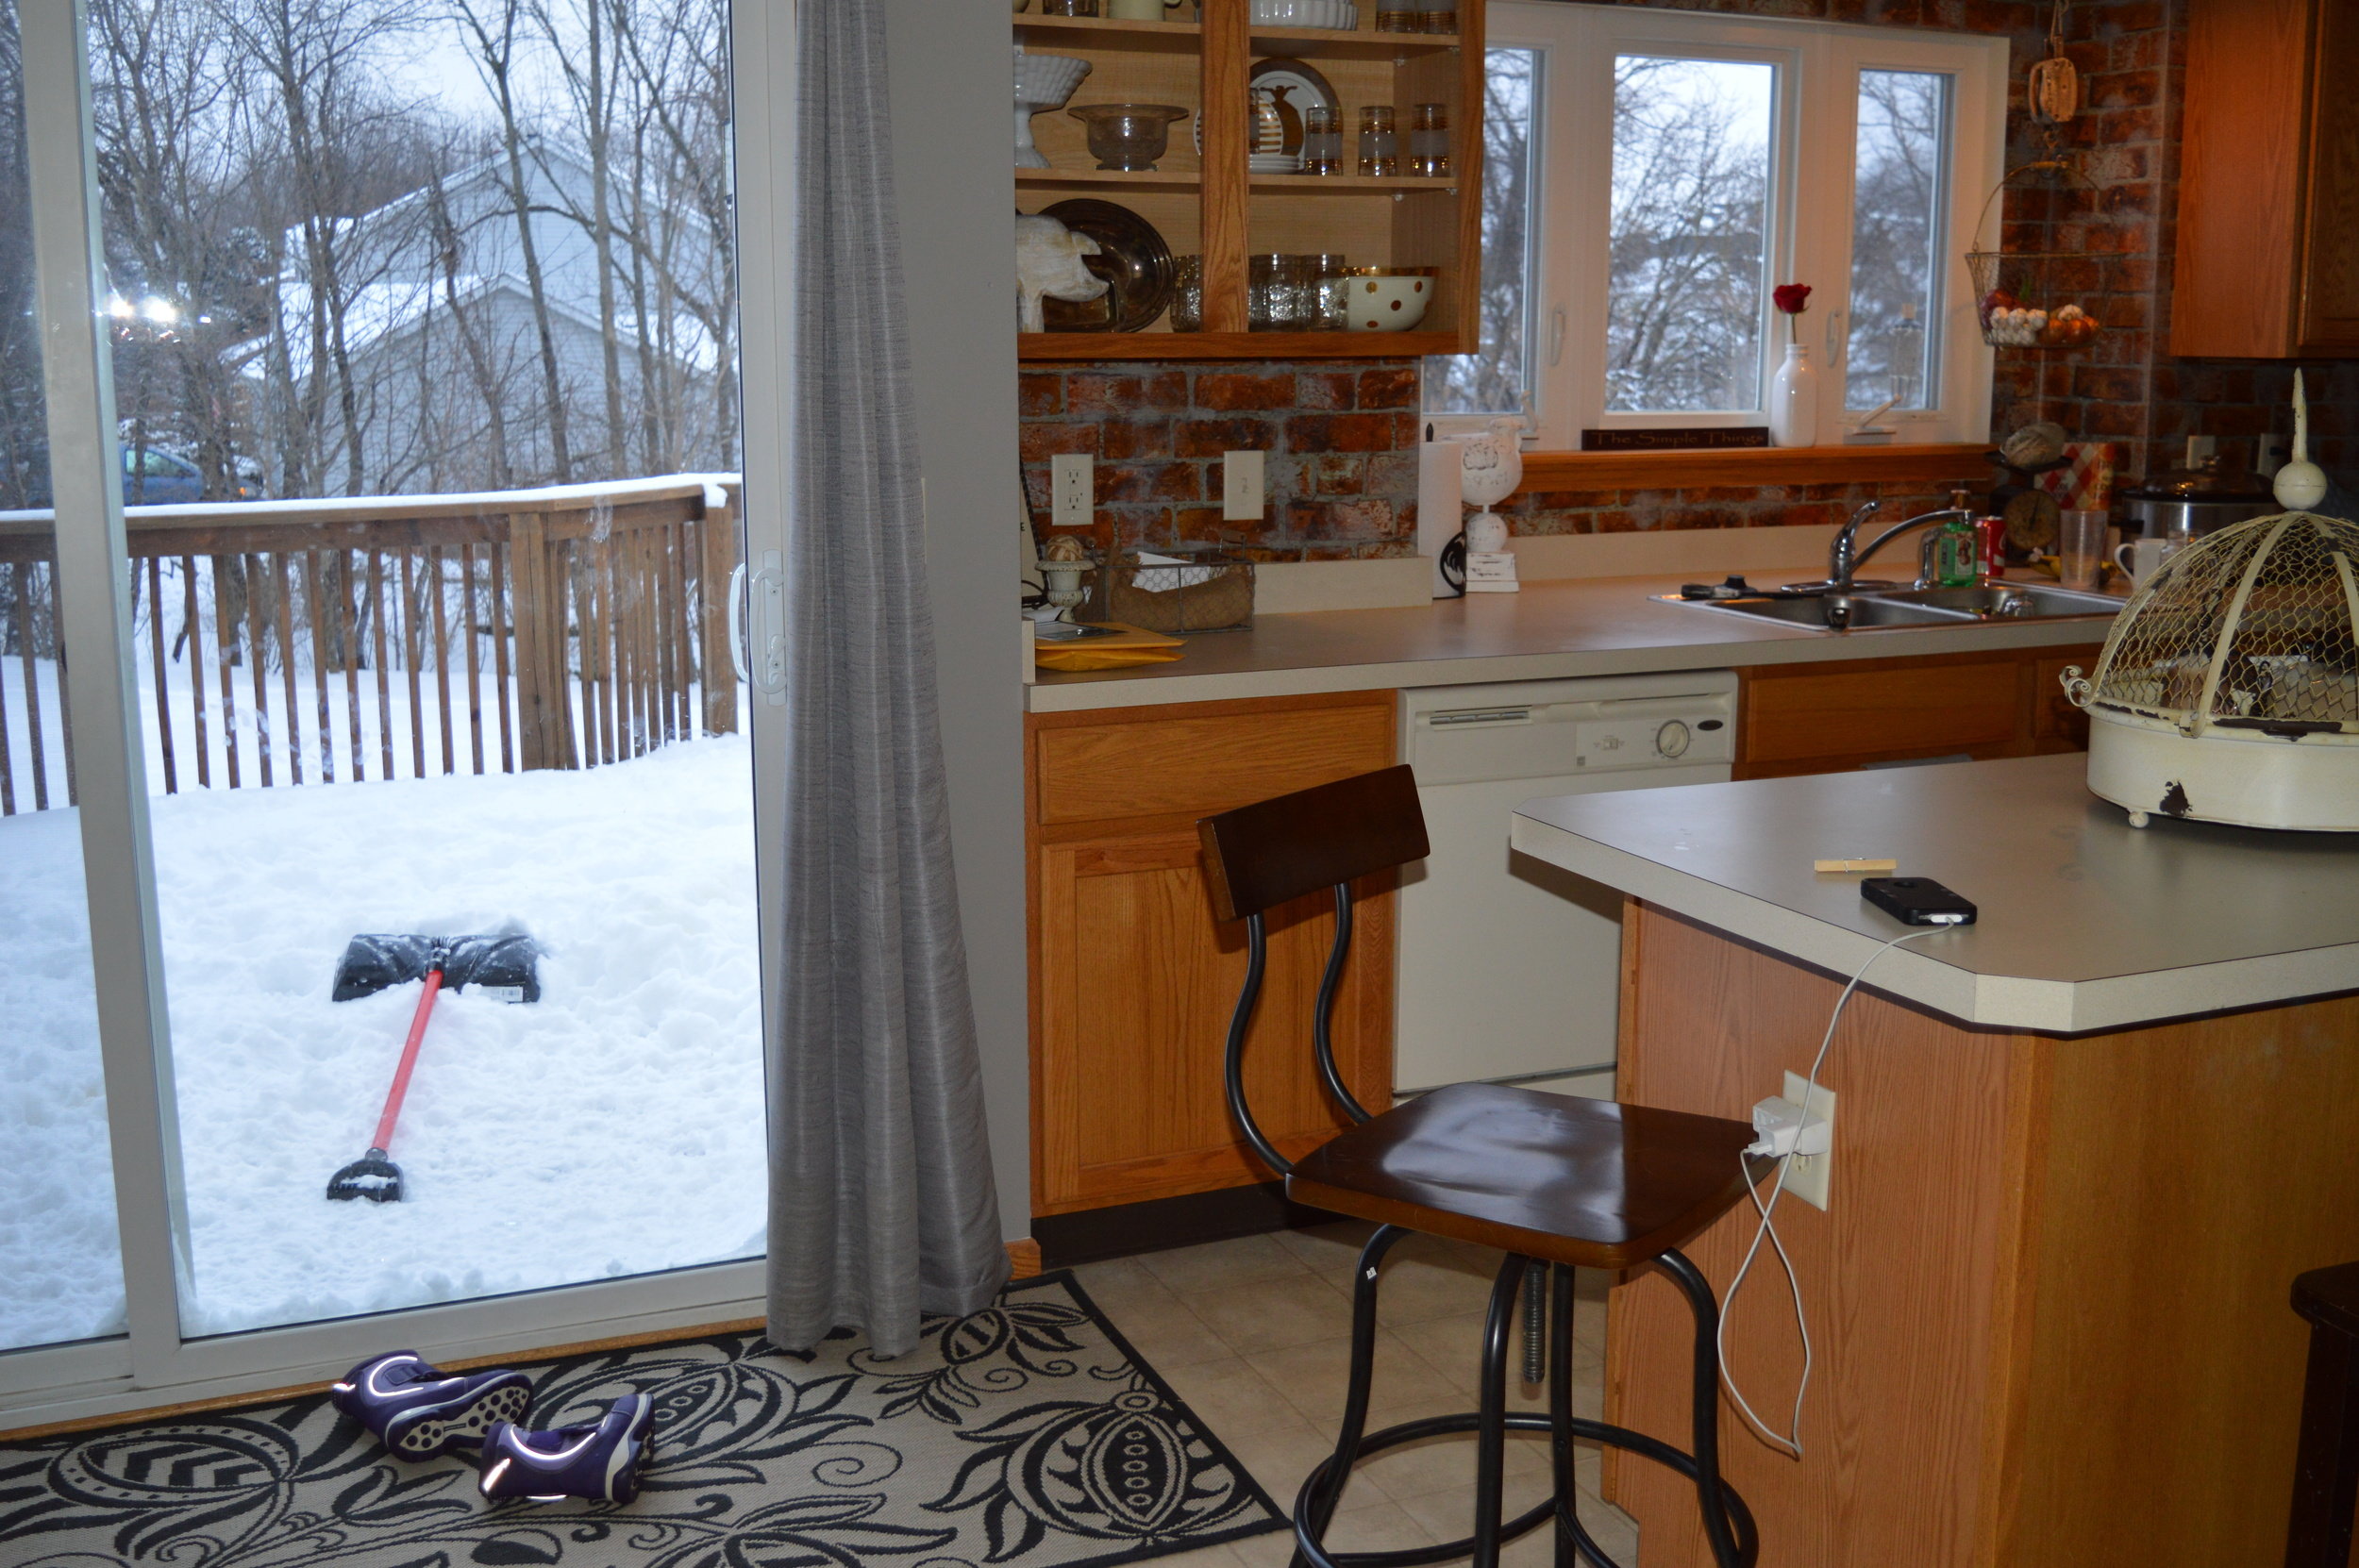 I wish I could enlarge this so you could see the finger prints on the sliding glass door.  Please notice the snow boots on the floor, the mail piled on the counter and someone's phone charging out of the designated charging station!